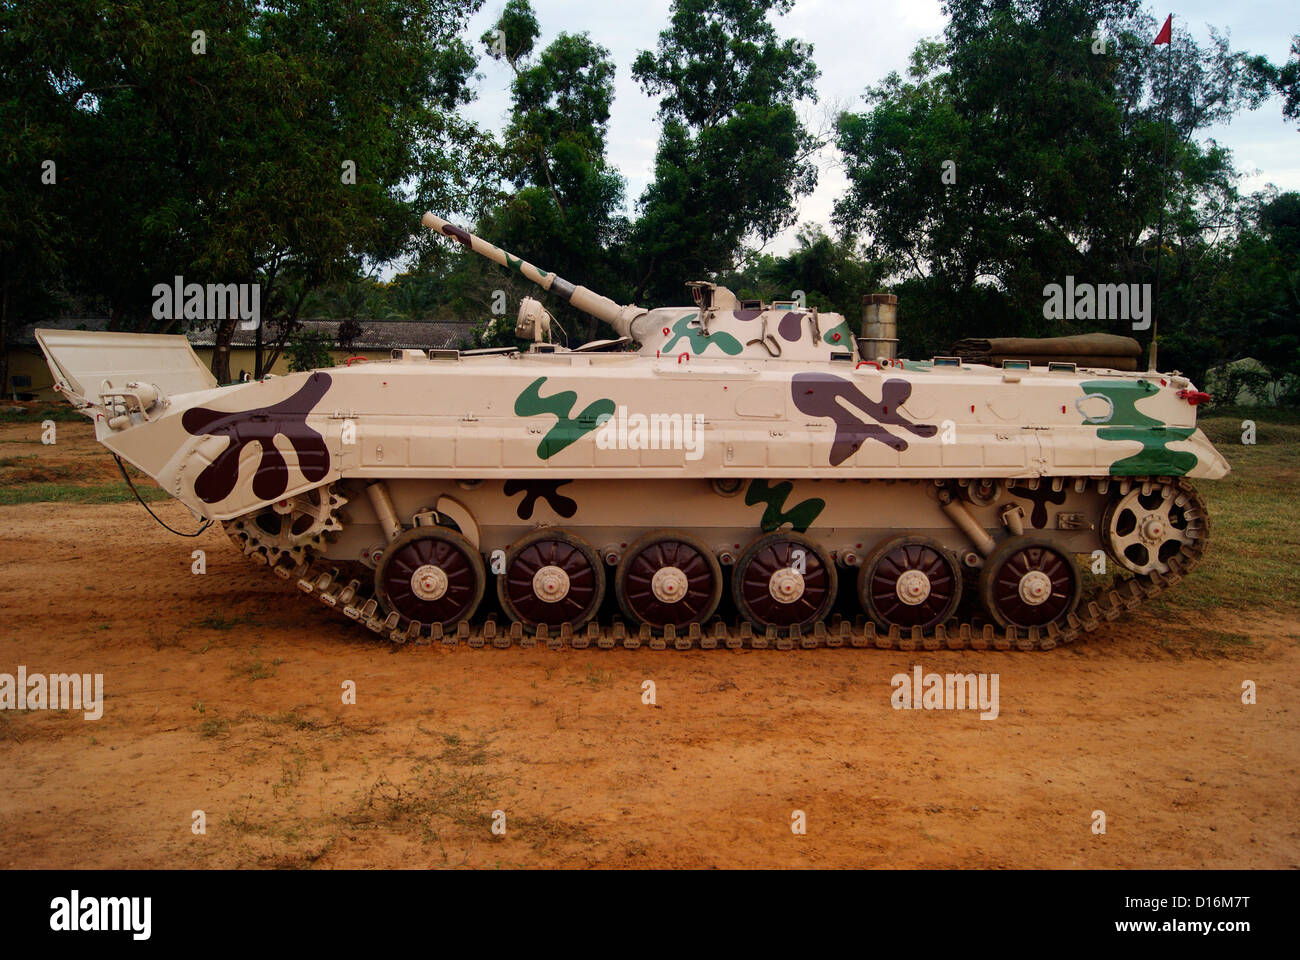 Indian Army Battle Tank resting at the Military Base in South India - Stock Image